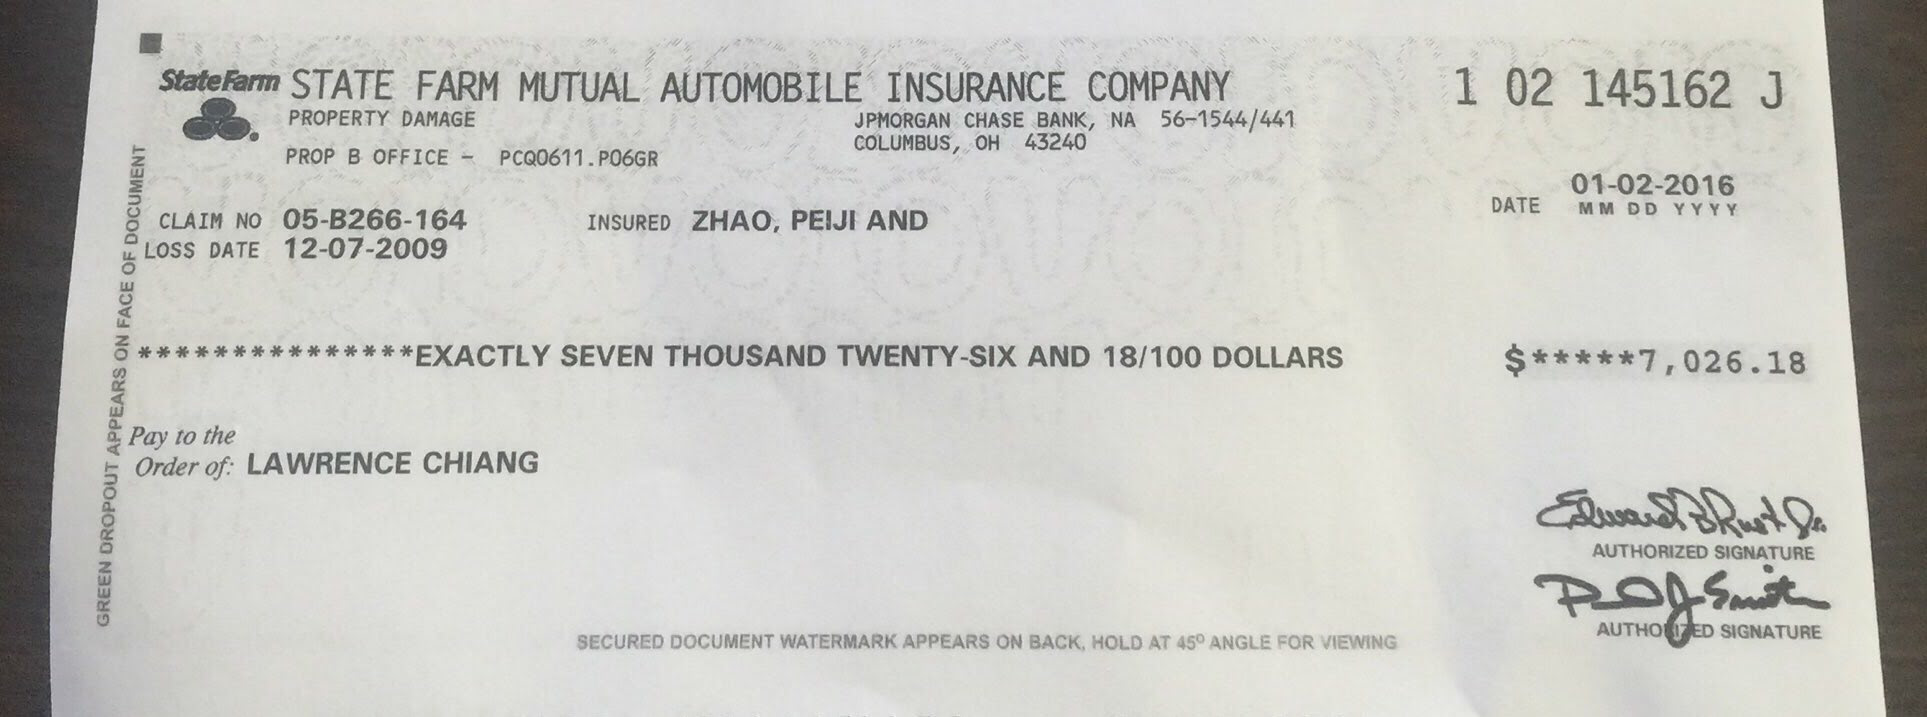 Check cleared! Re 12/07/2009 accident. Paid January 3, 2016